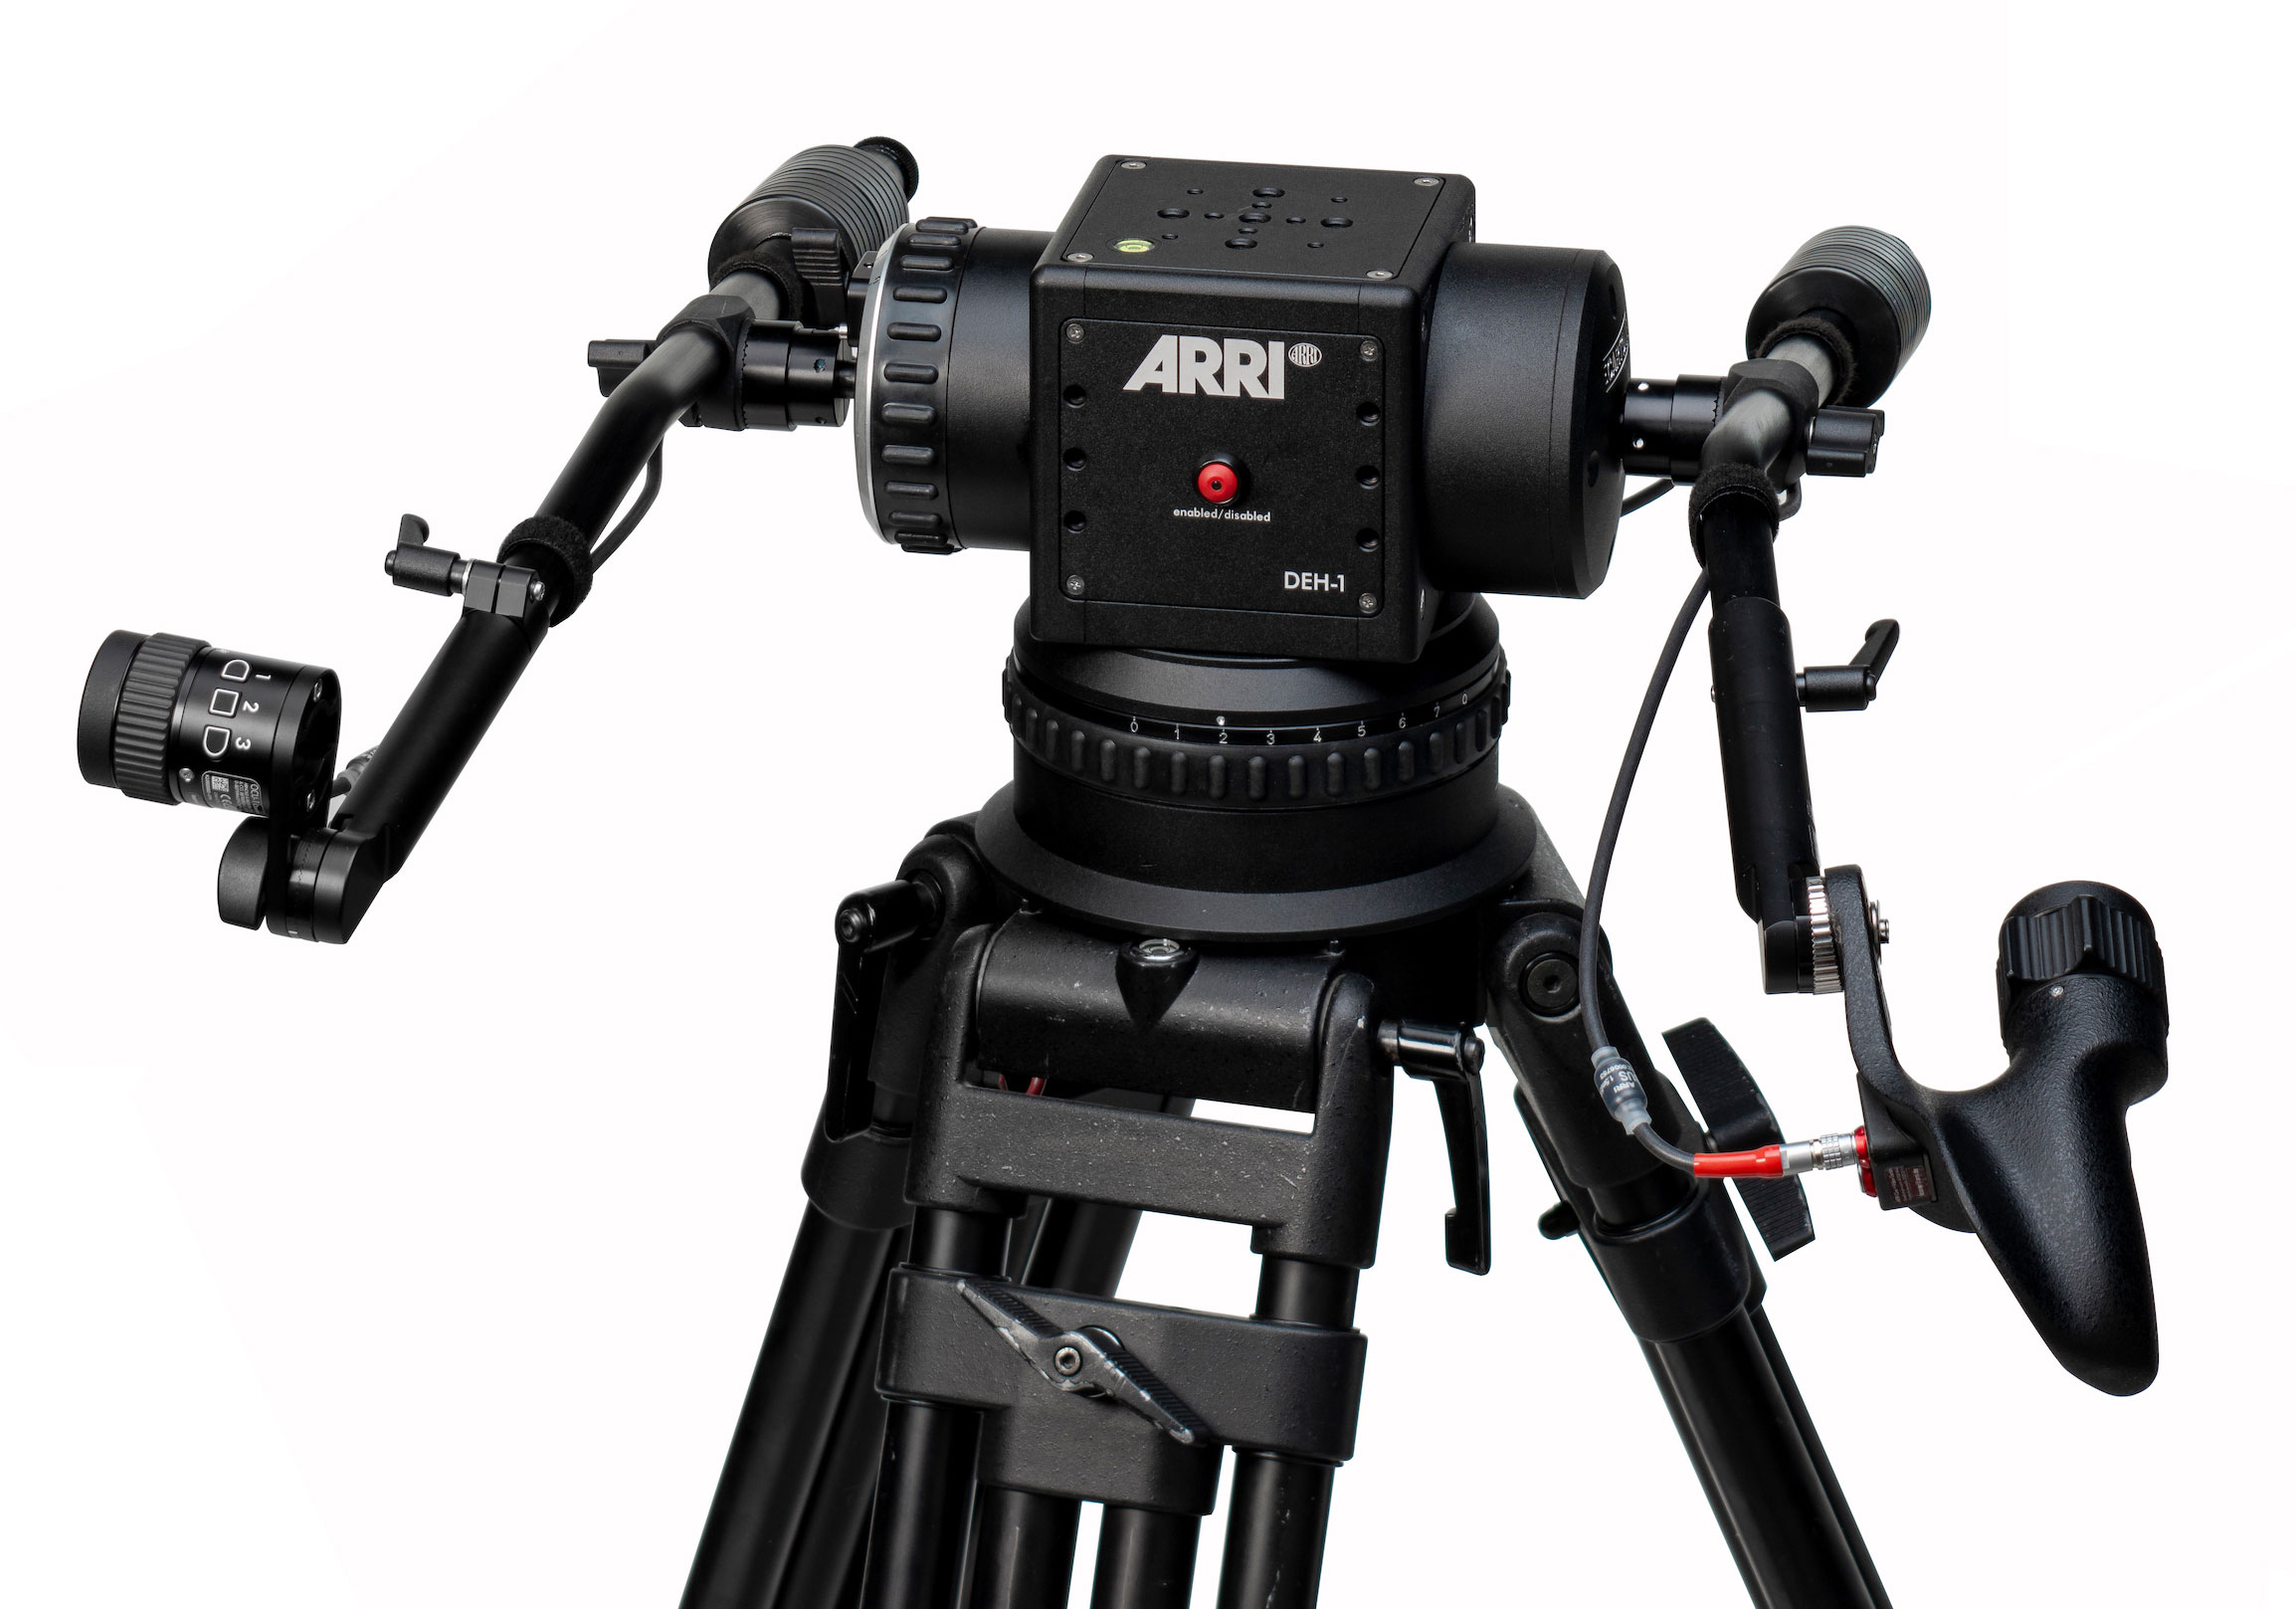 ARRI: DEH-1 Digital Encoder Head Expands Remote SRH-3 Stabilization System